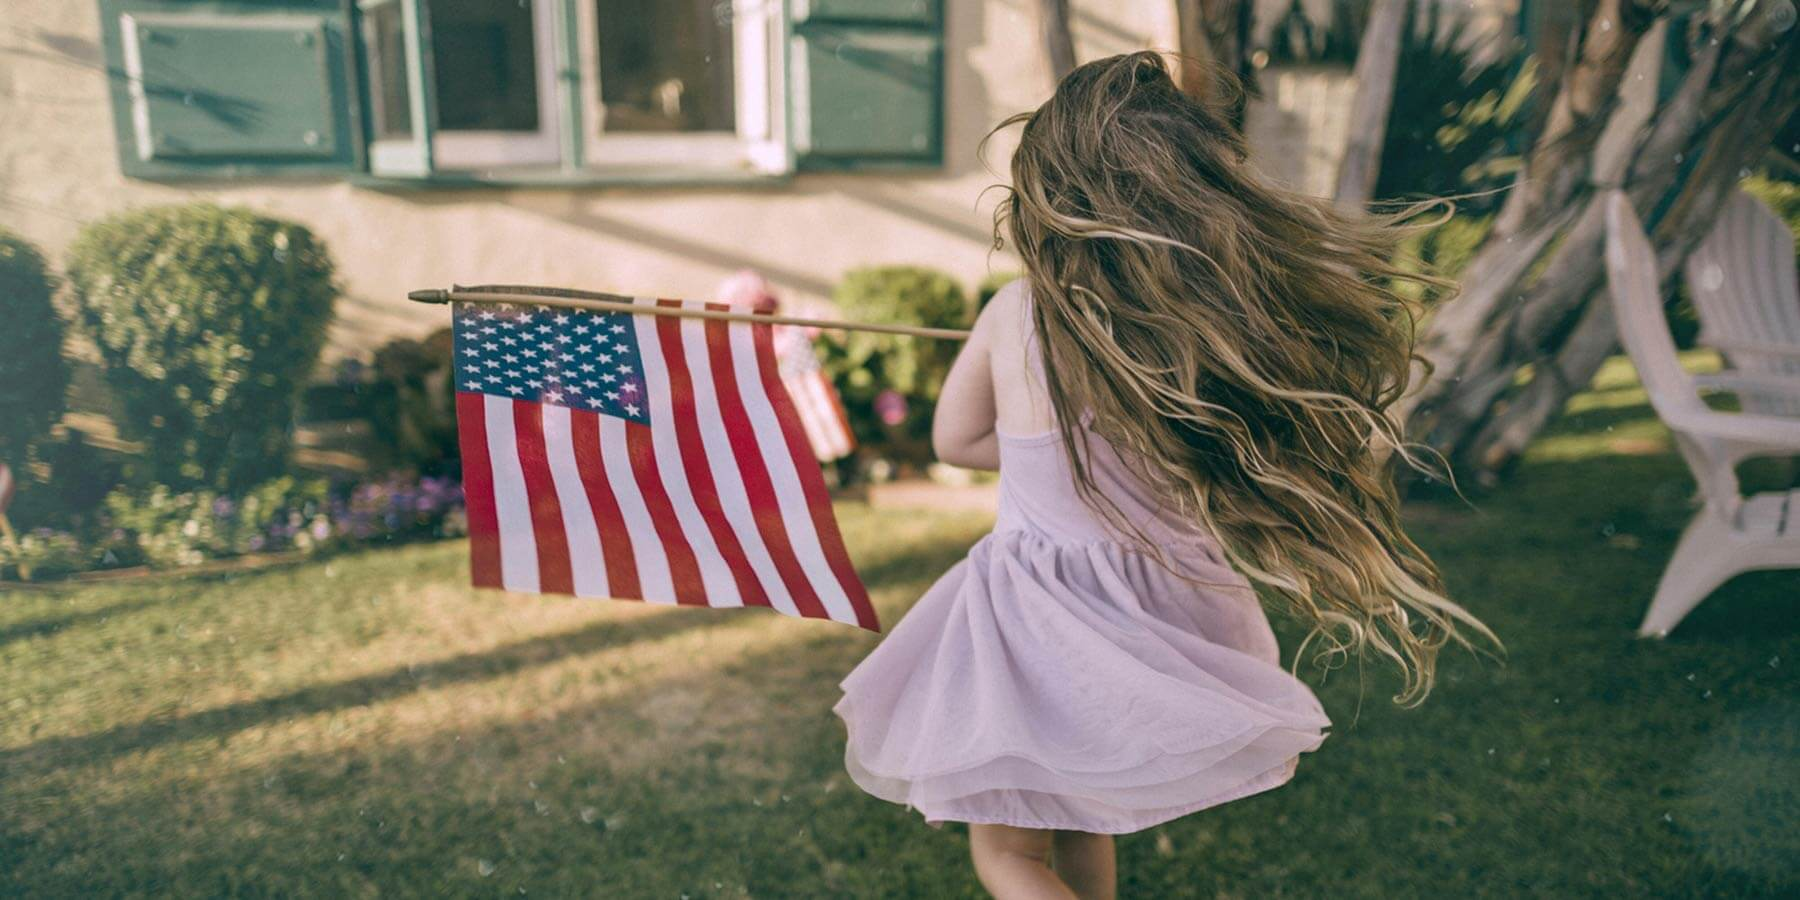 Little girl running around with an American Flag at a house.